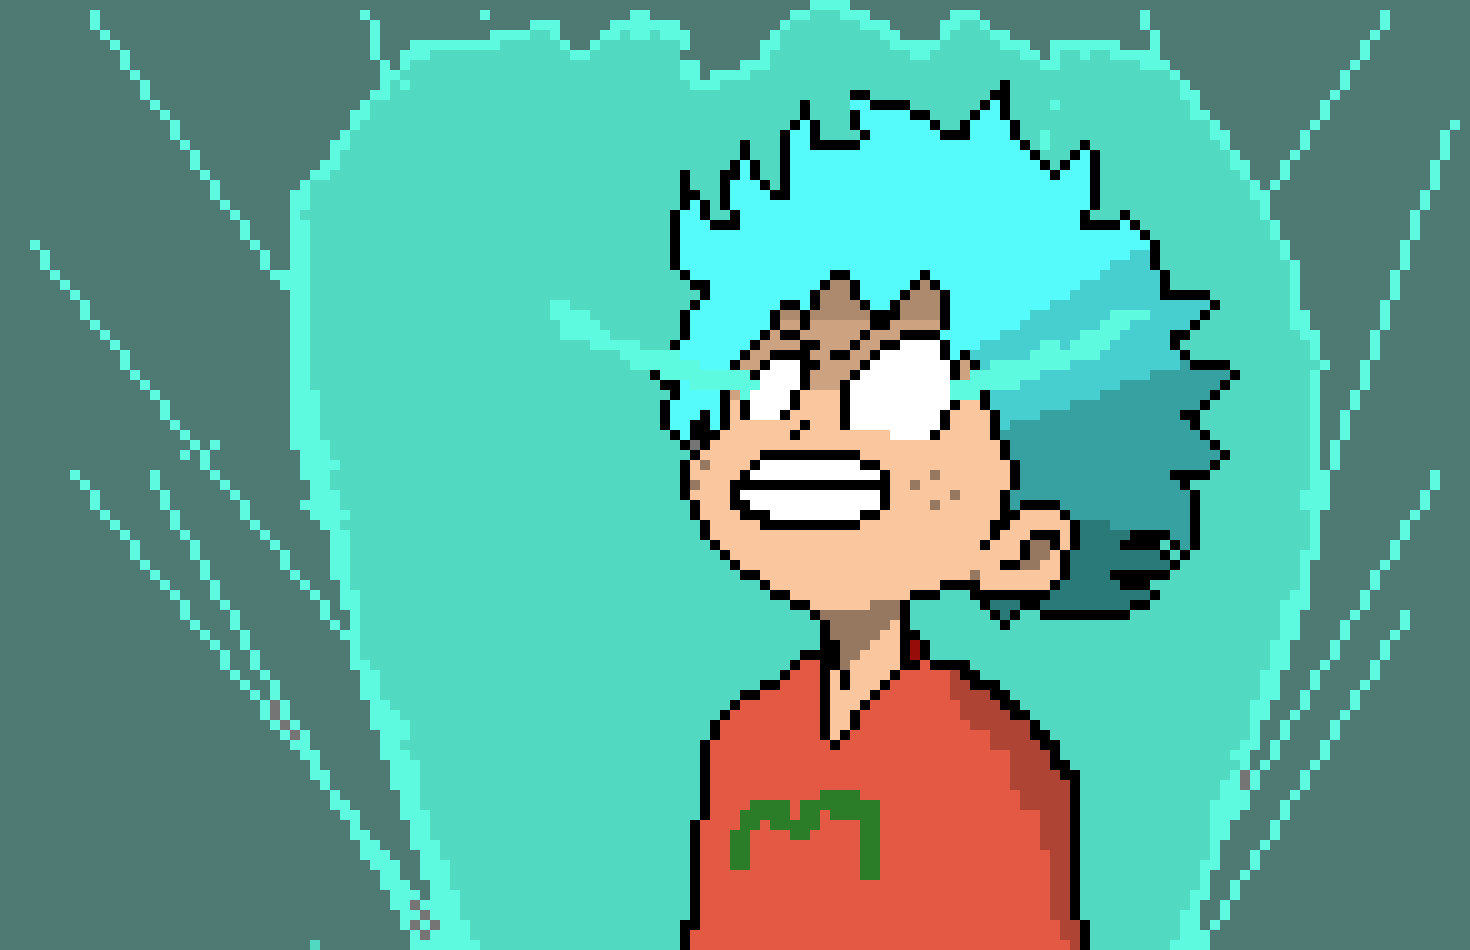 [7a7d8] If Deku was born with OFA V2